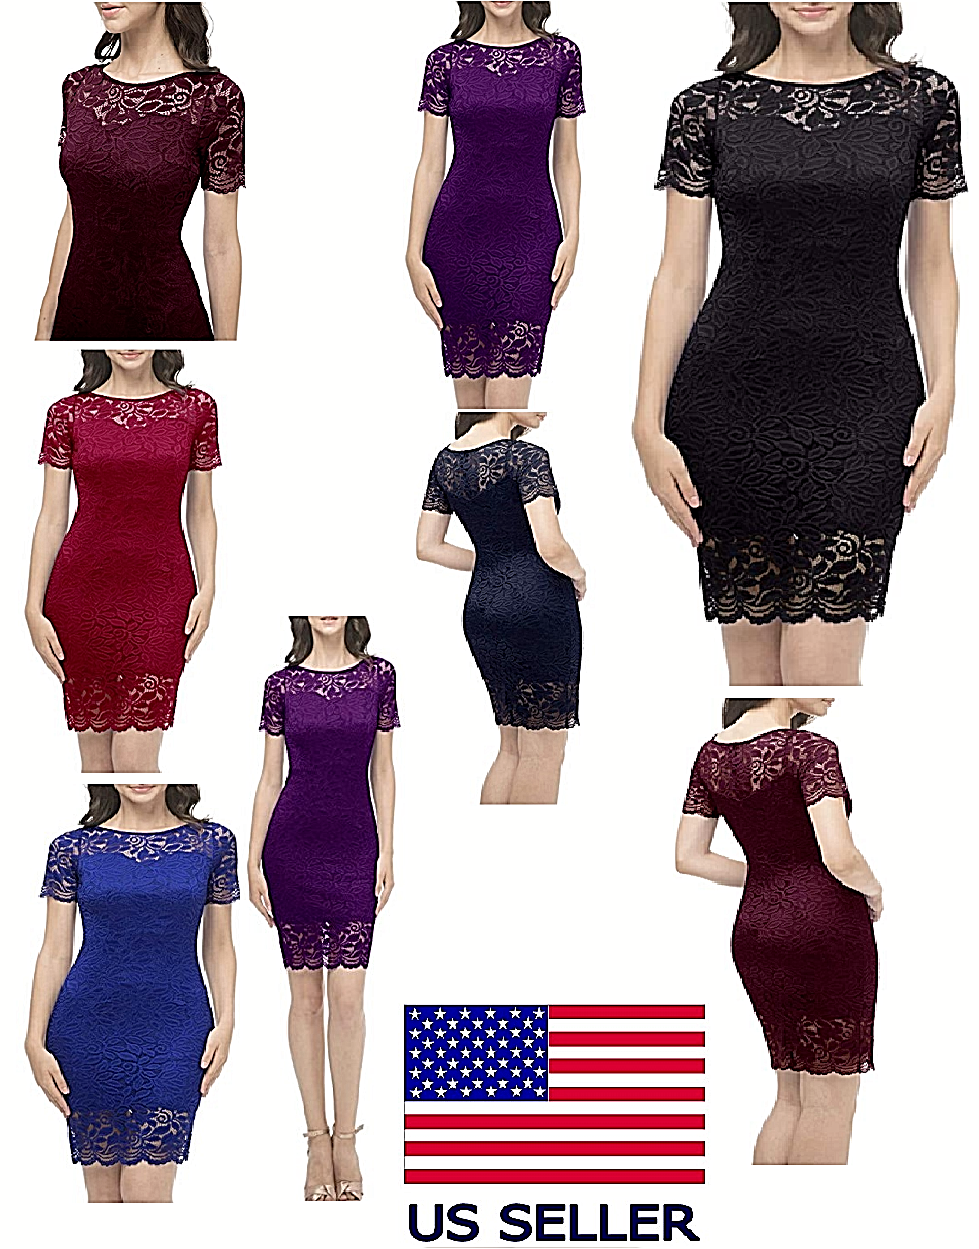 Women Vintage Floral Lace Bridesmaid Dress 1/4 Sleeve Wedding Party Fashion NICE Clothing, Shoes & Accessories